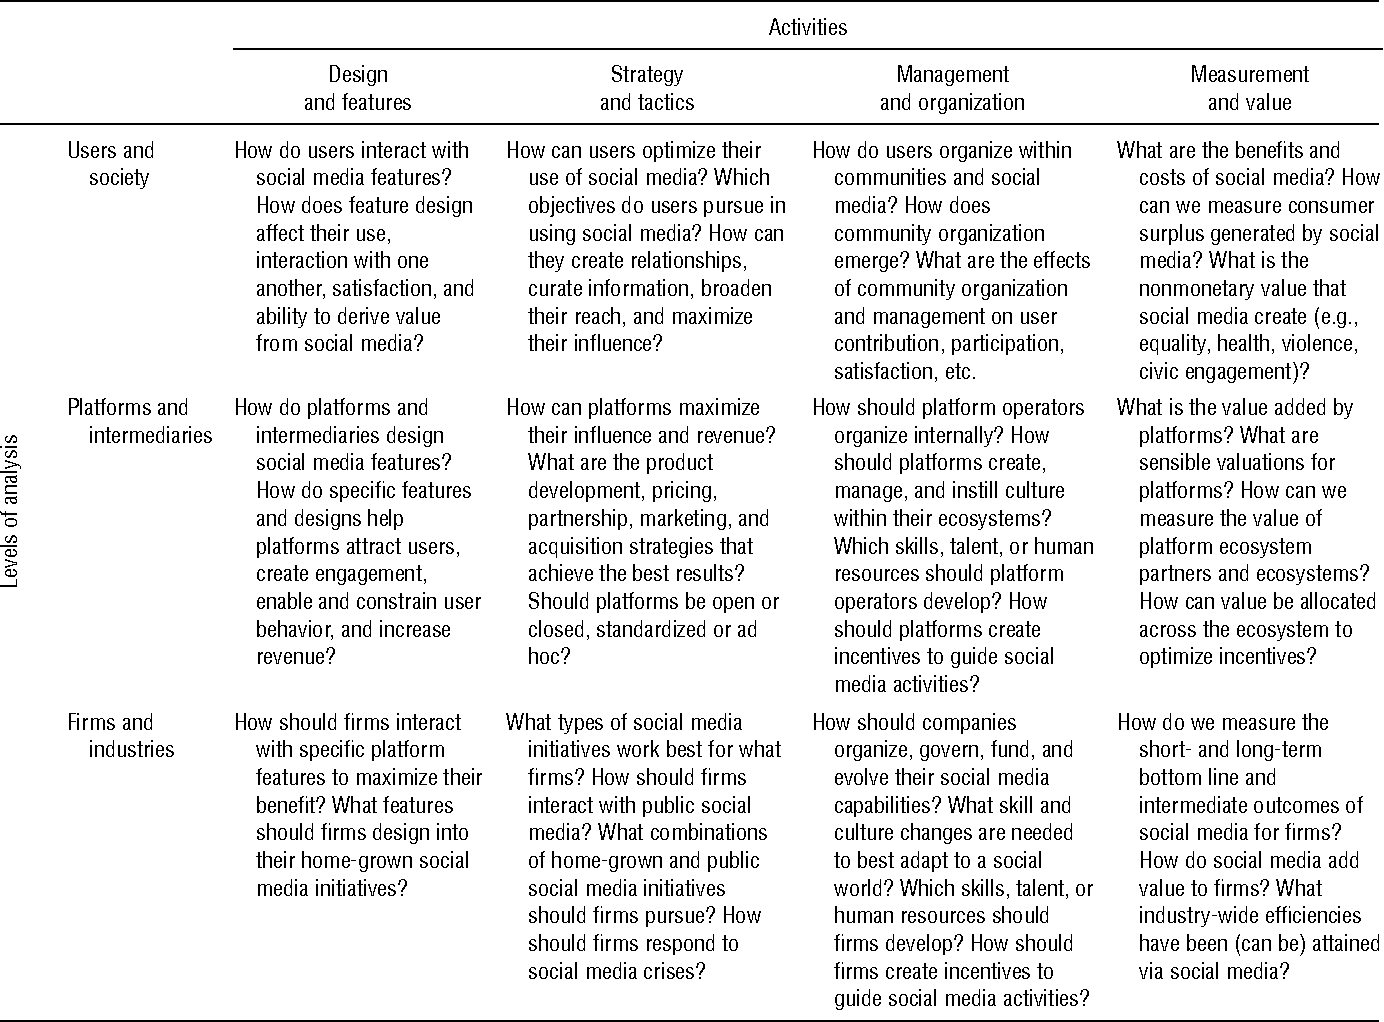 Table 1 from Introduction to the Special Issue - Social